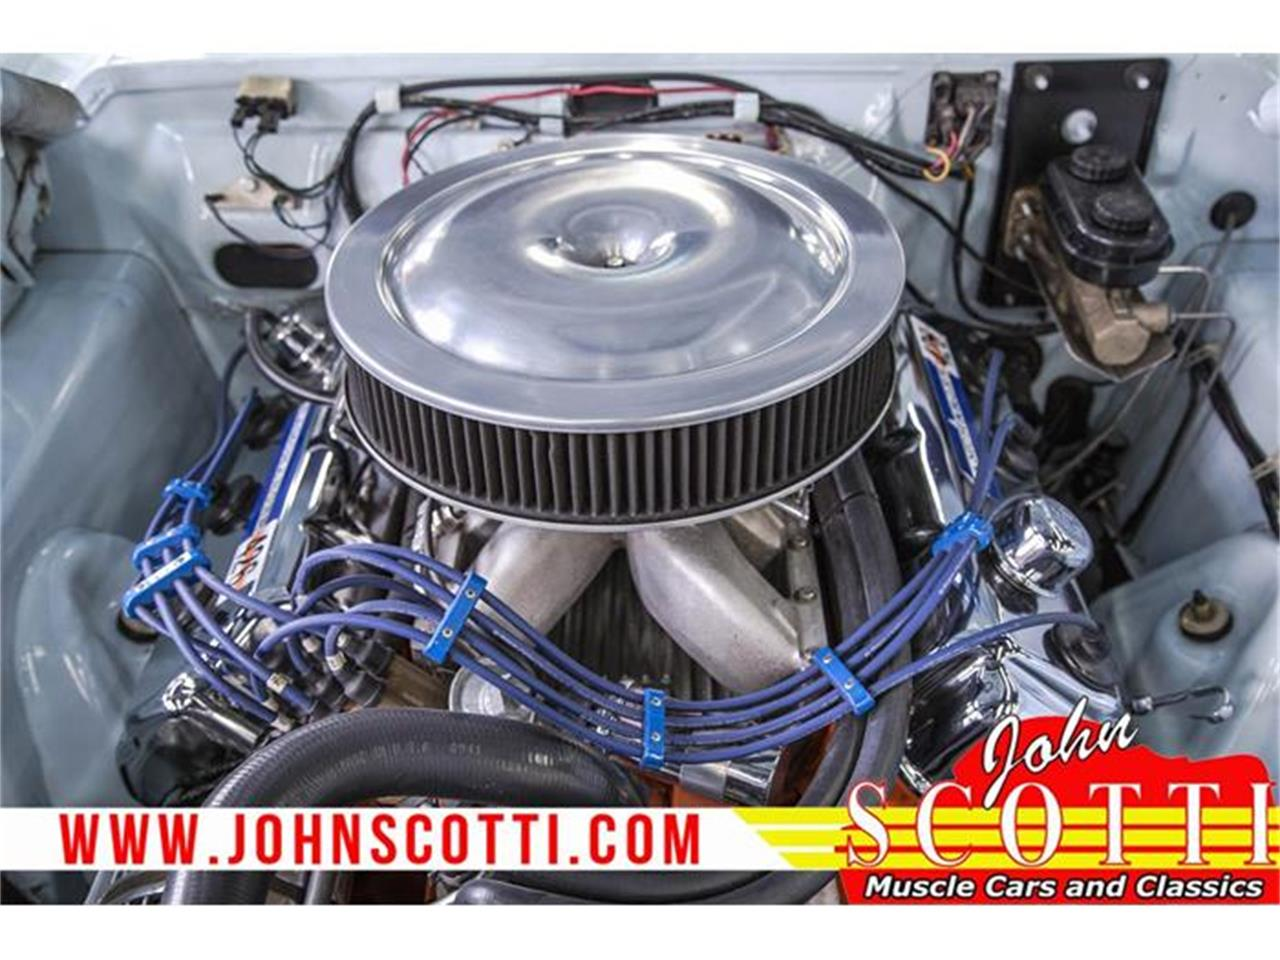 Large Picture of Classic 1963 Polara Offered by John Scotti Classic Cars - GA0M